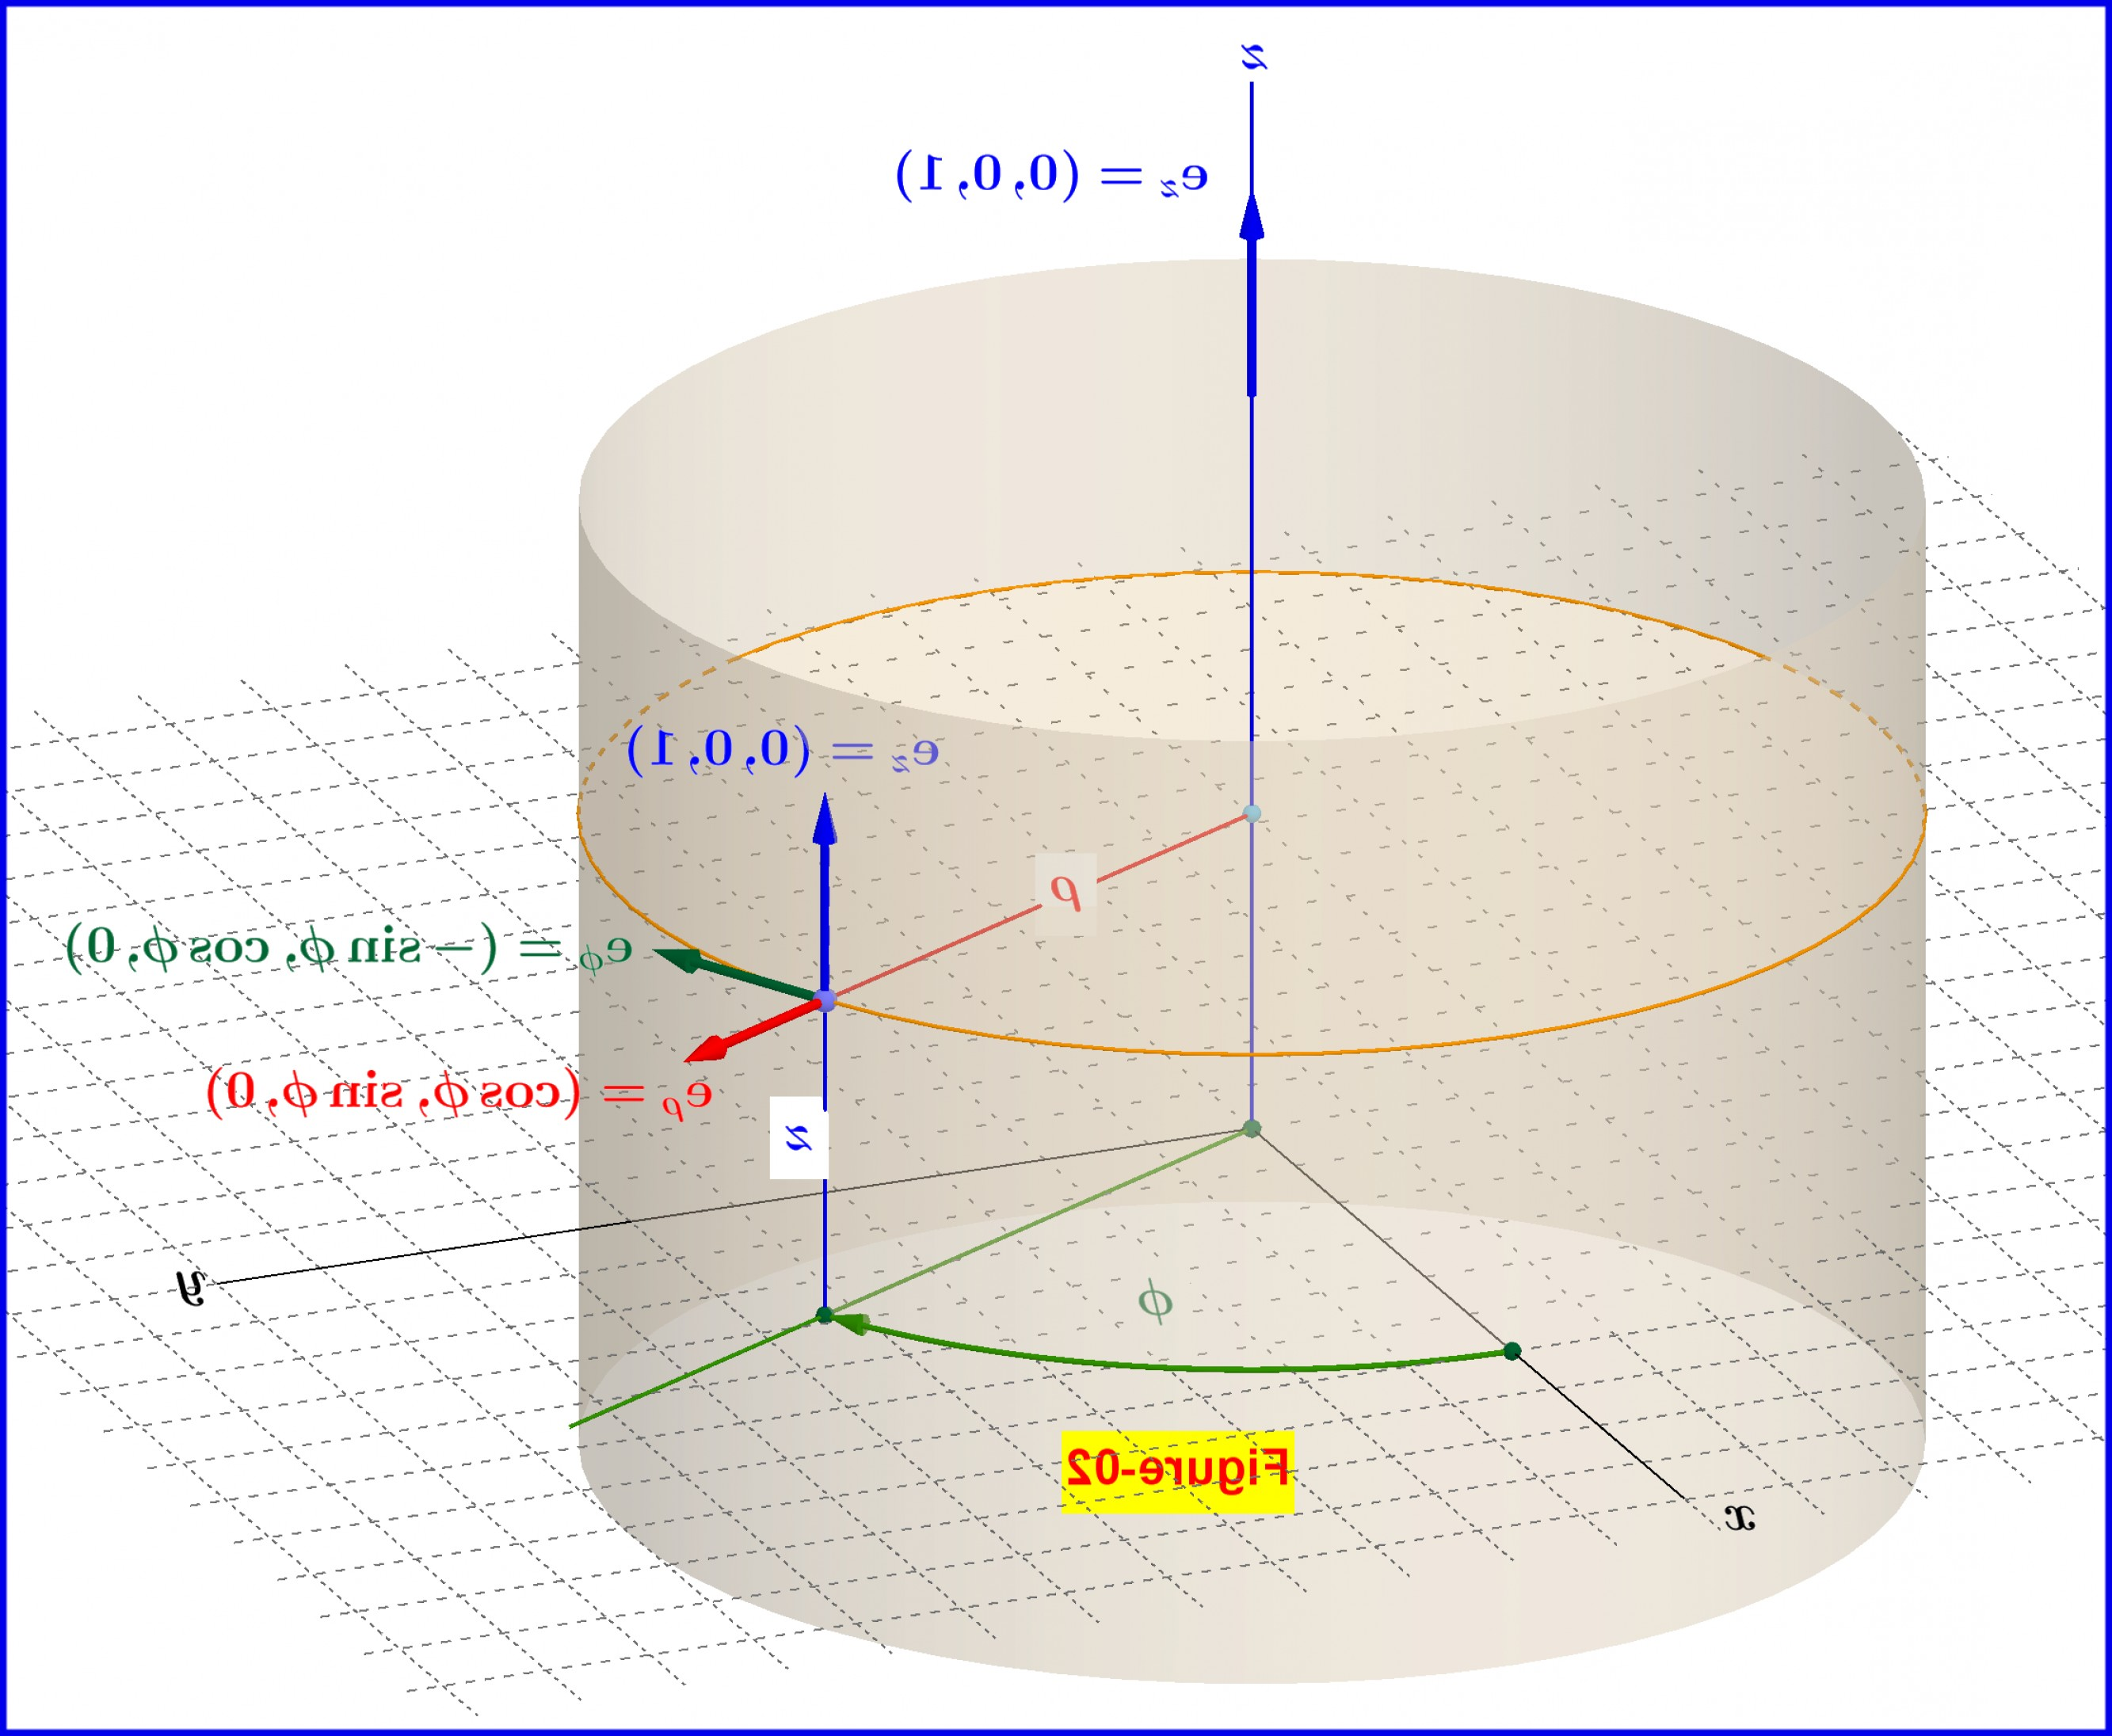 Unit Vectors Cylindrical Coordinate System: Unit Vectors In The Cylindrical Coordinate System As Functions Of Position